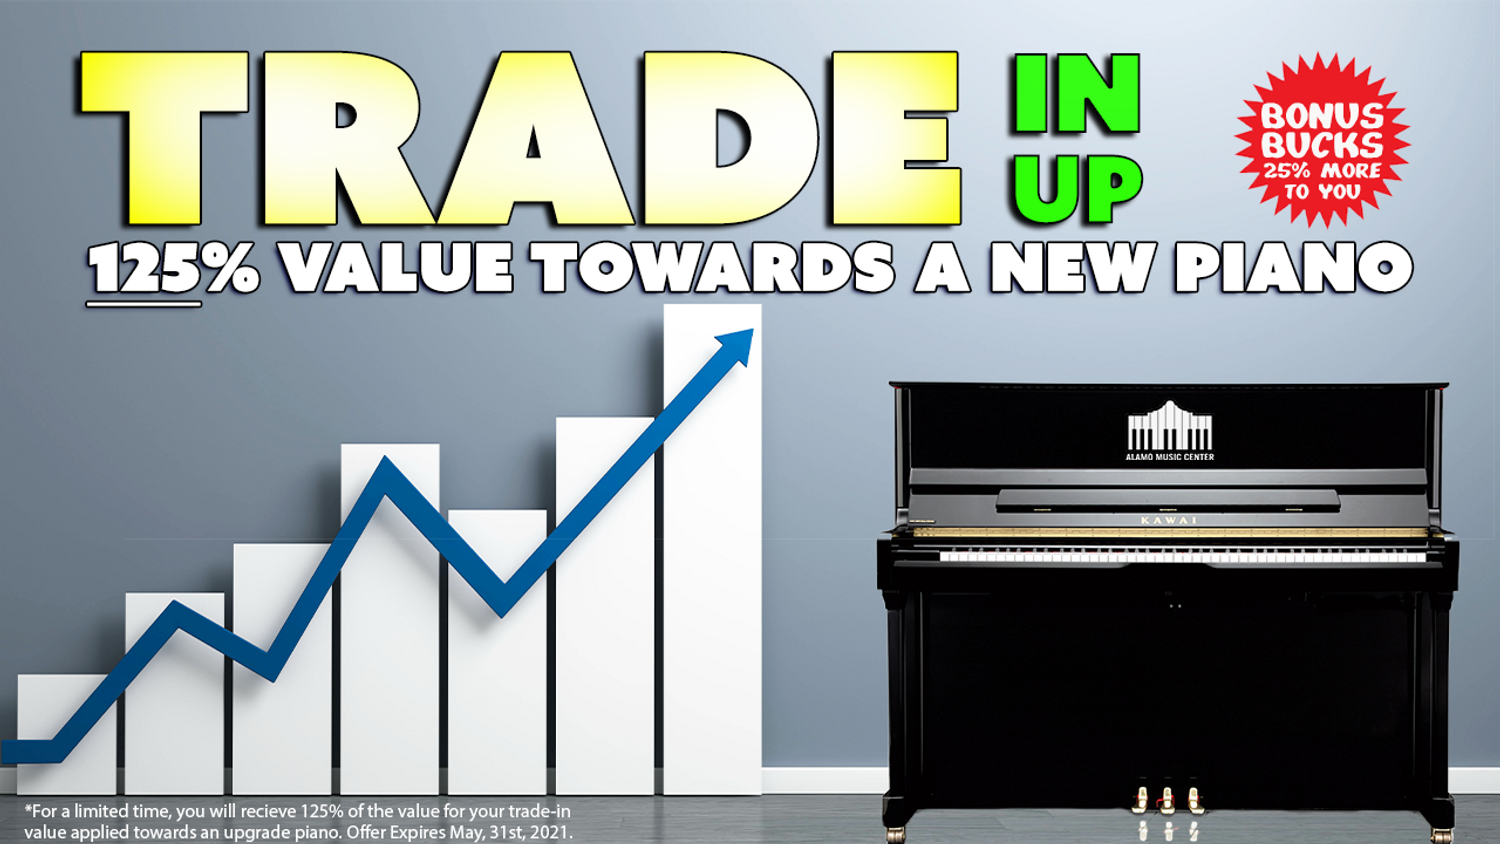 Trade-In/Trade-Up *Bonus Bucks - For a Limited Time, Receive 125% of the Value For Your Piano